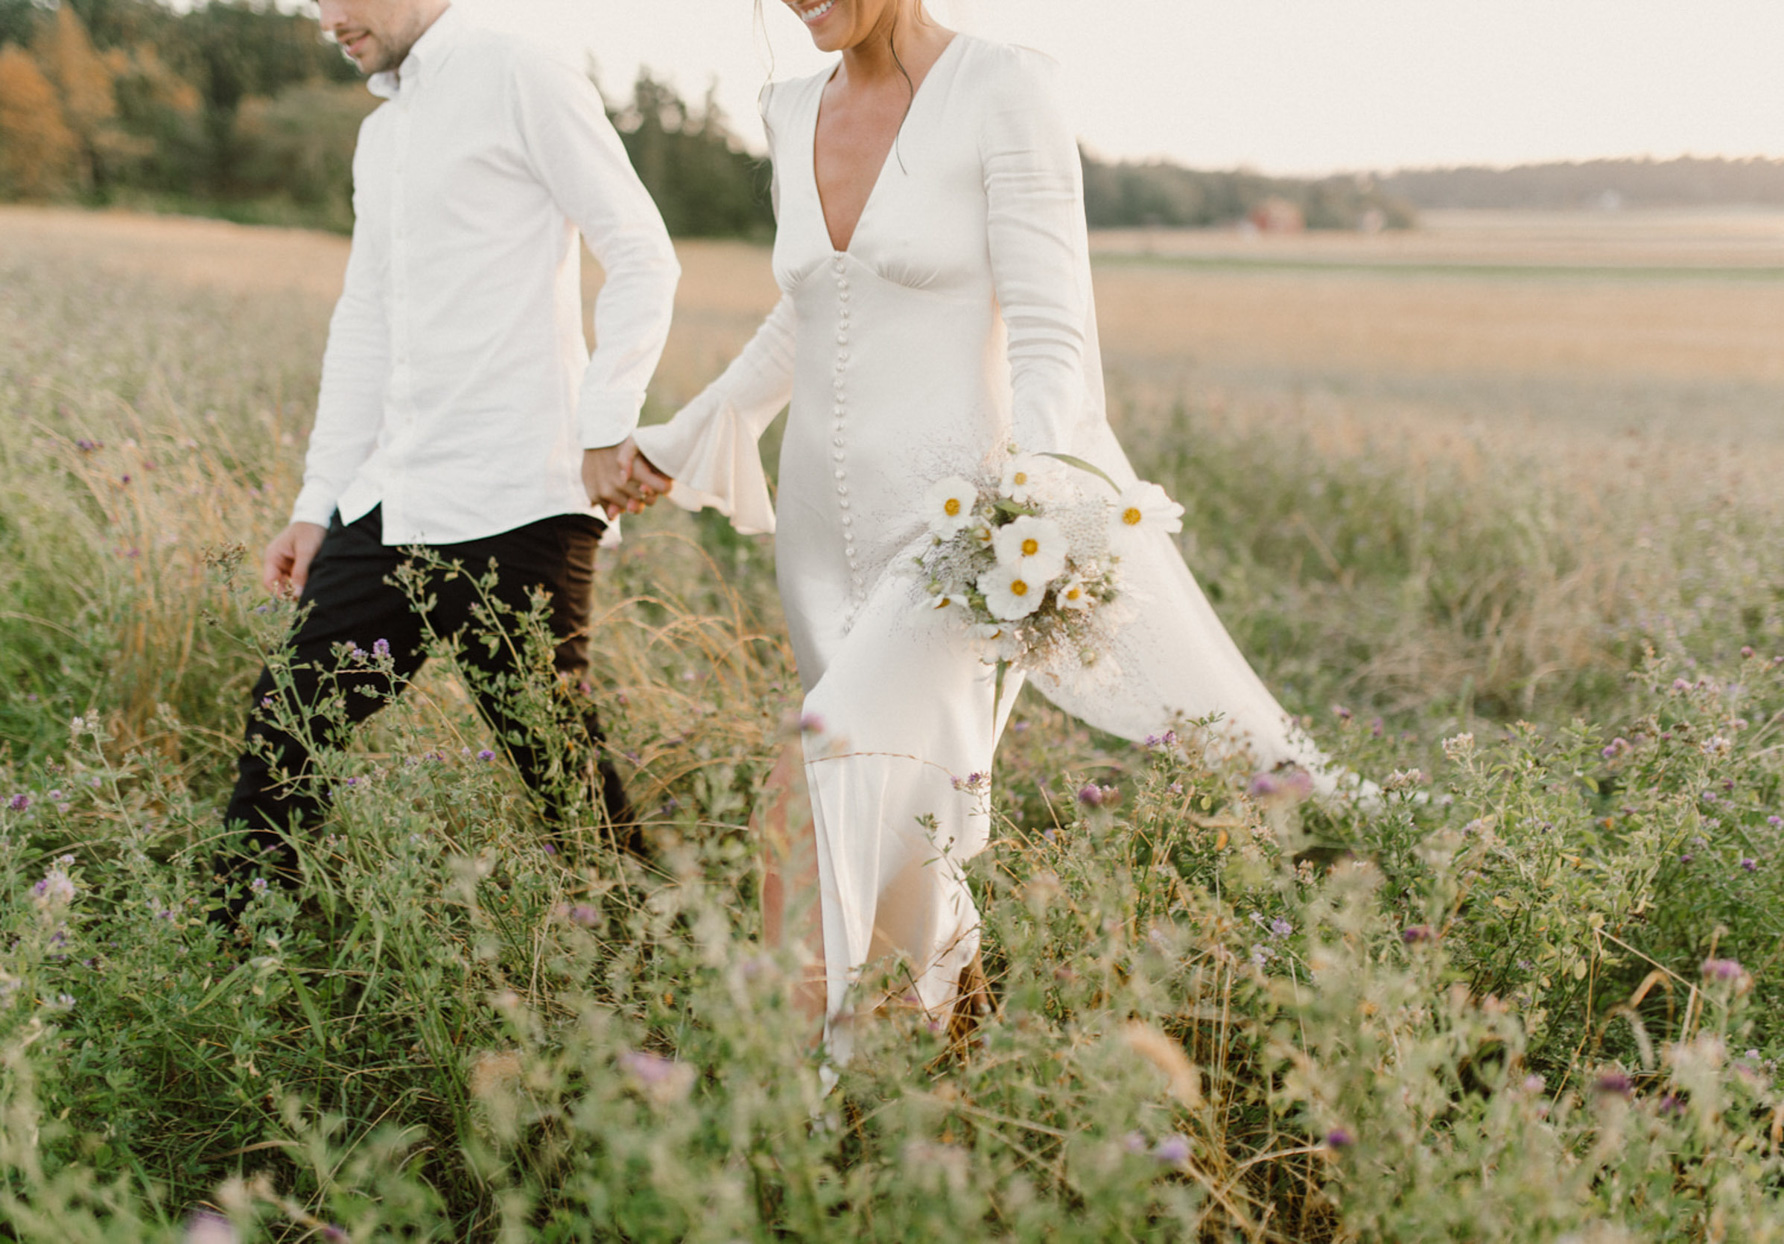 bride and groom holding hands in grass